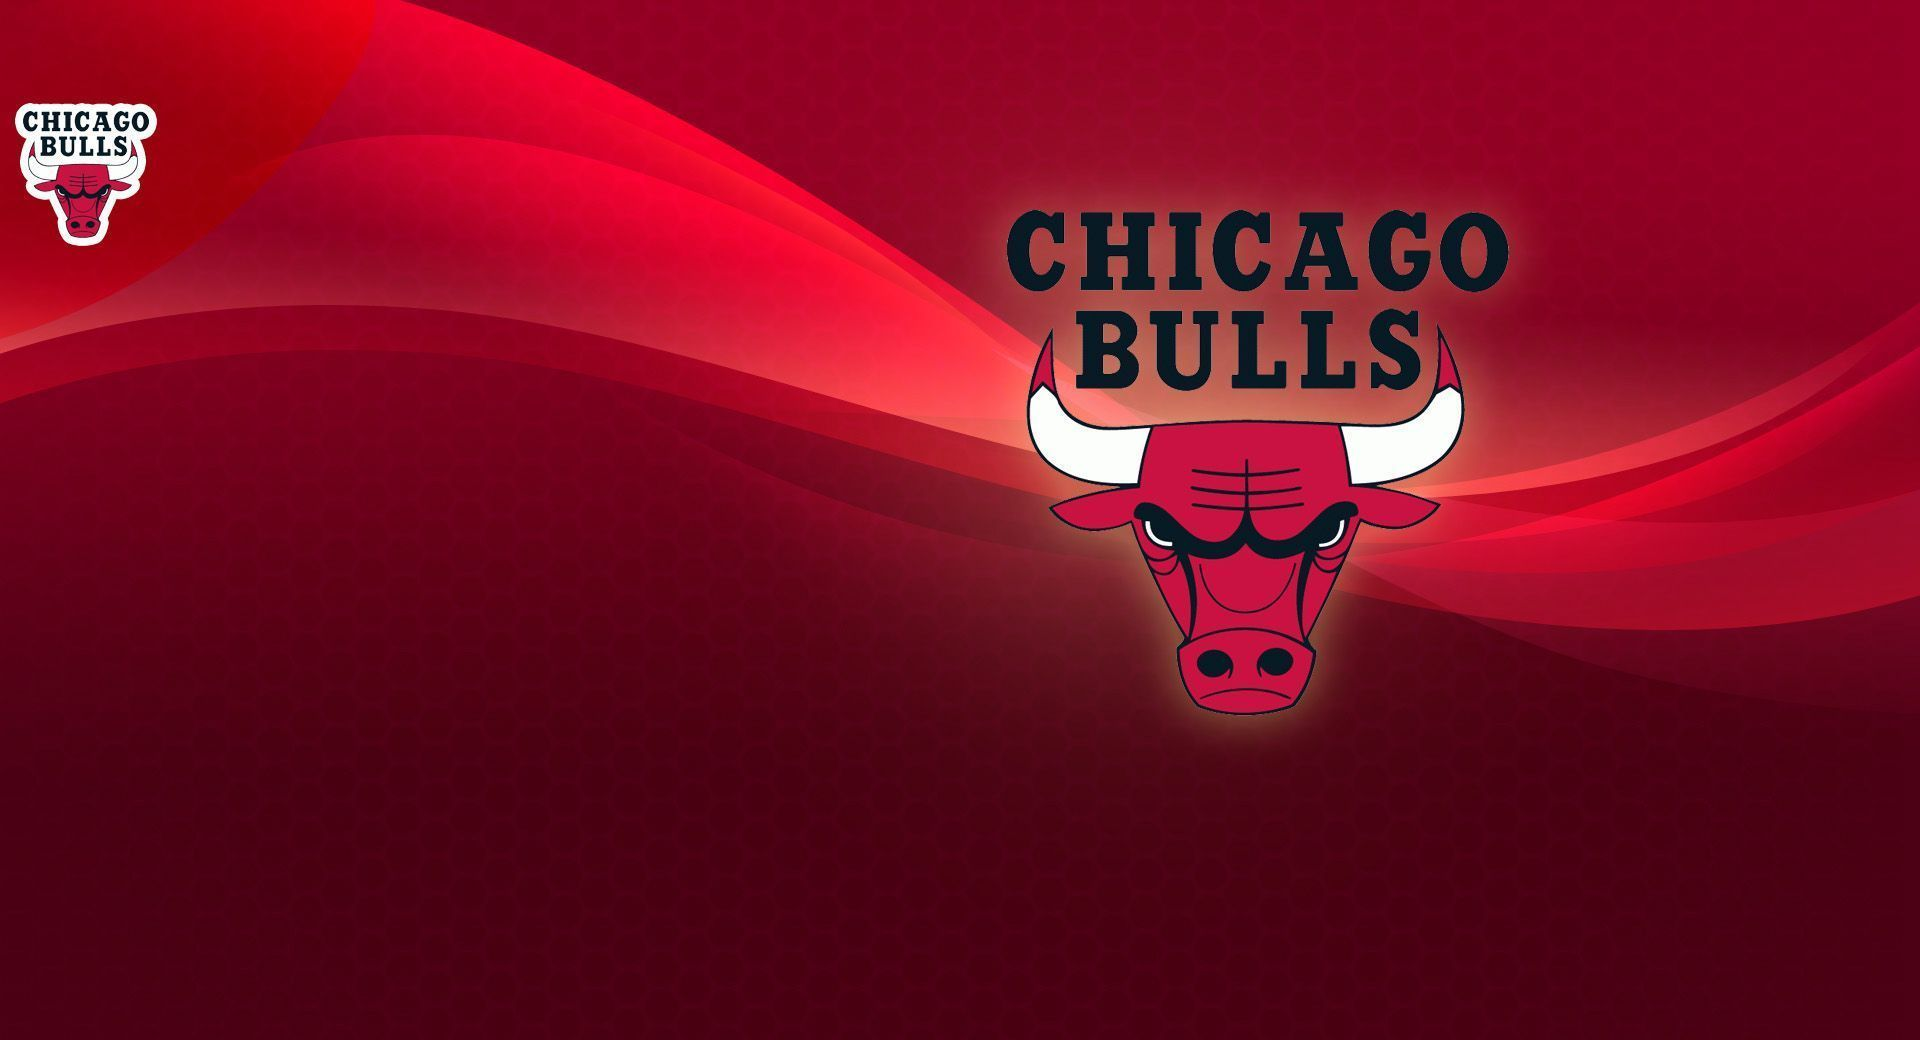 bulls logo wallpapers group | hd wallpapers | pinterest | iphone